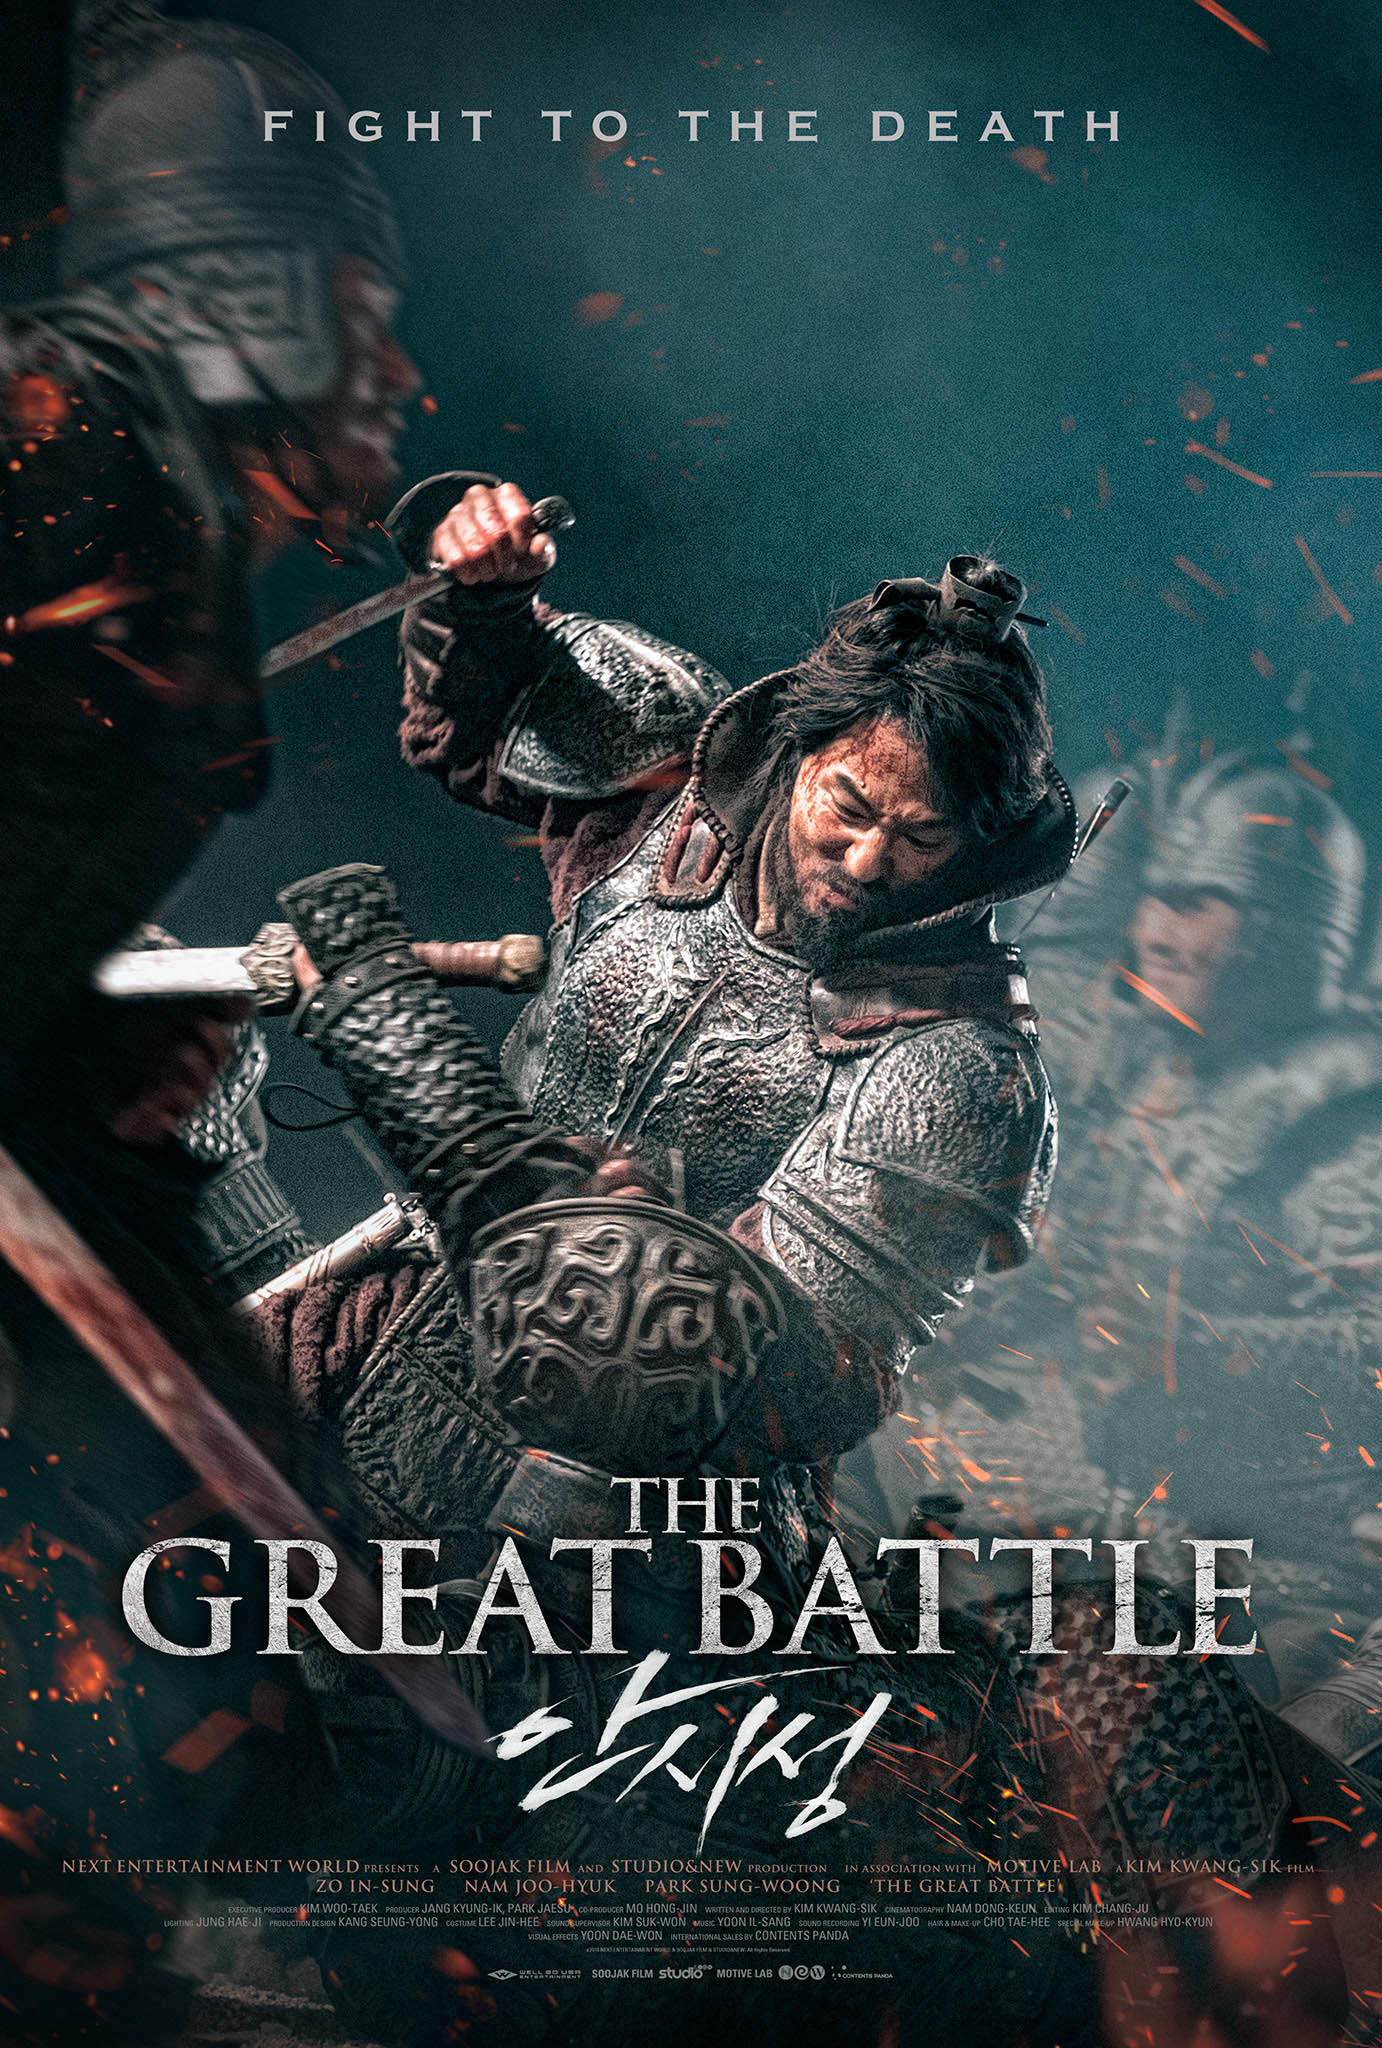 The Great Battle poster art